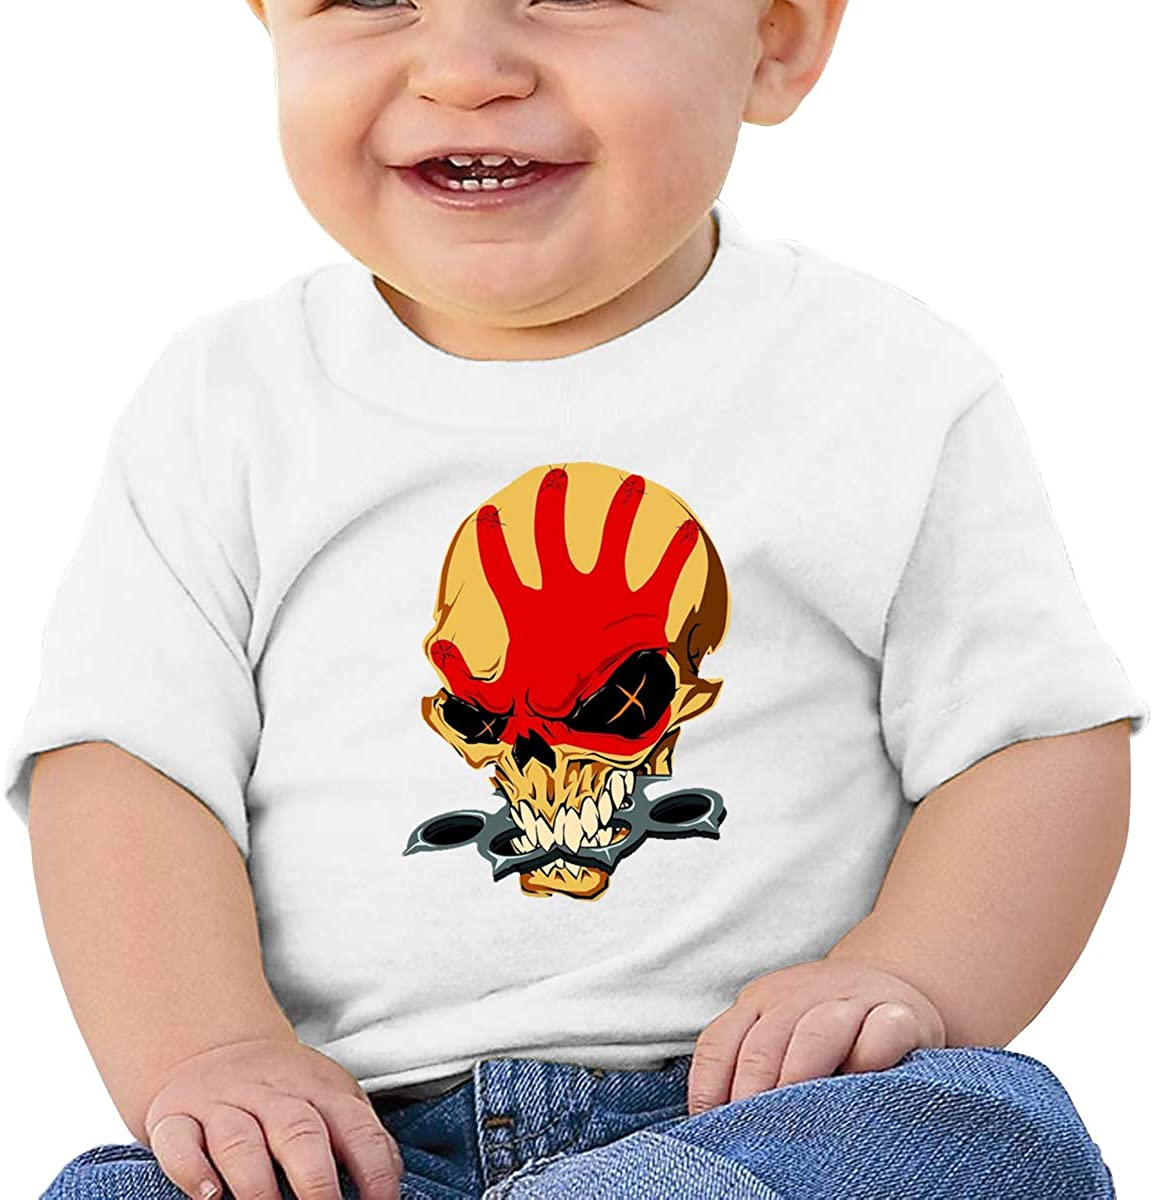 6-24 Months Boy and Girl Baby Short Sleeve T-Shirt Five Finger Death Punch Original Minimalist Style White